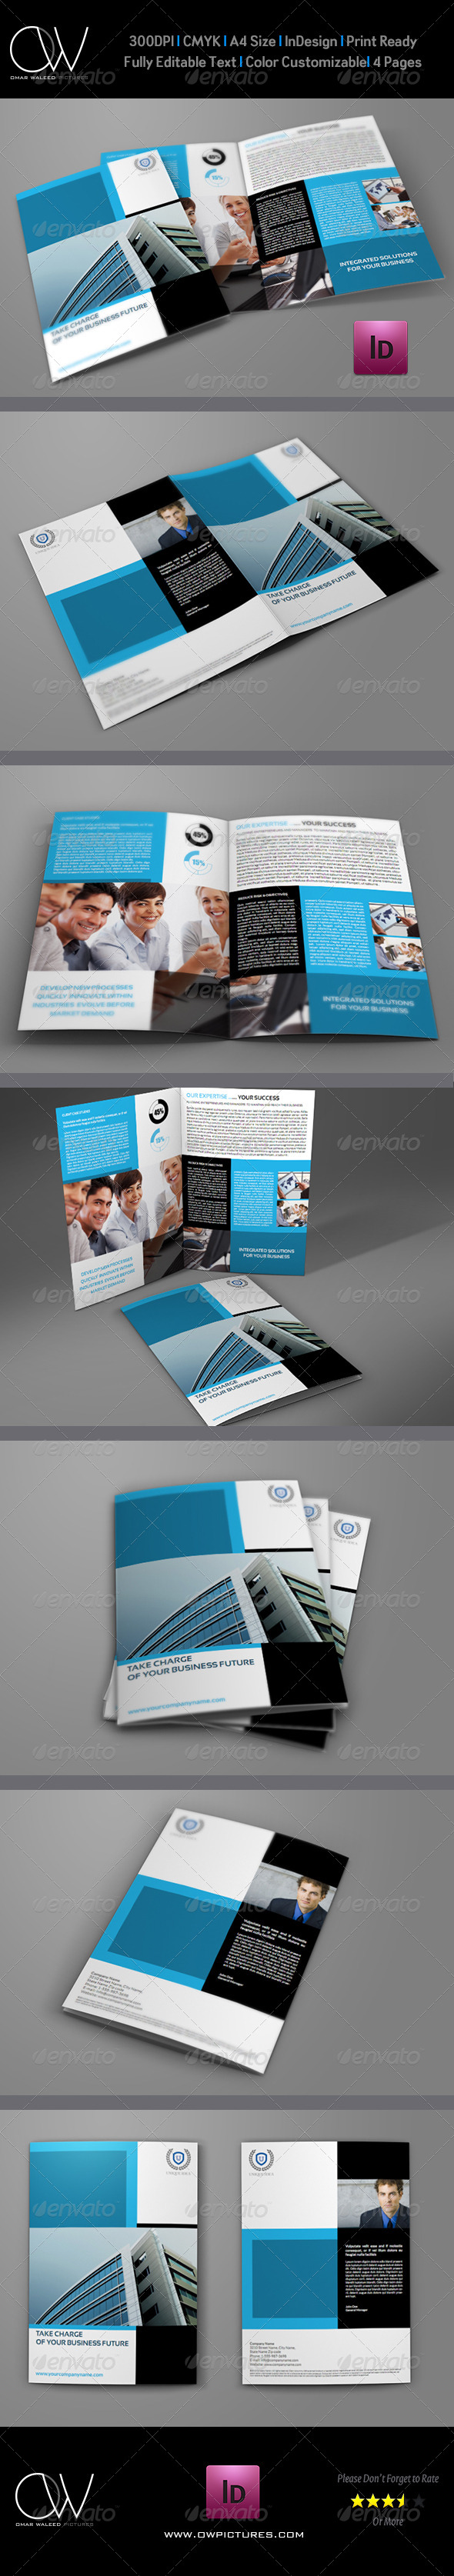 GraphicRiver Company Brochure Bi-Fold Template Vol.9 6249960